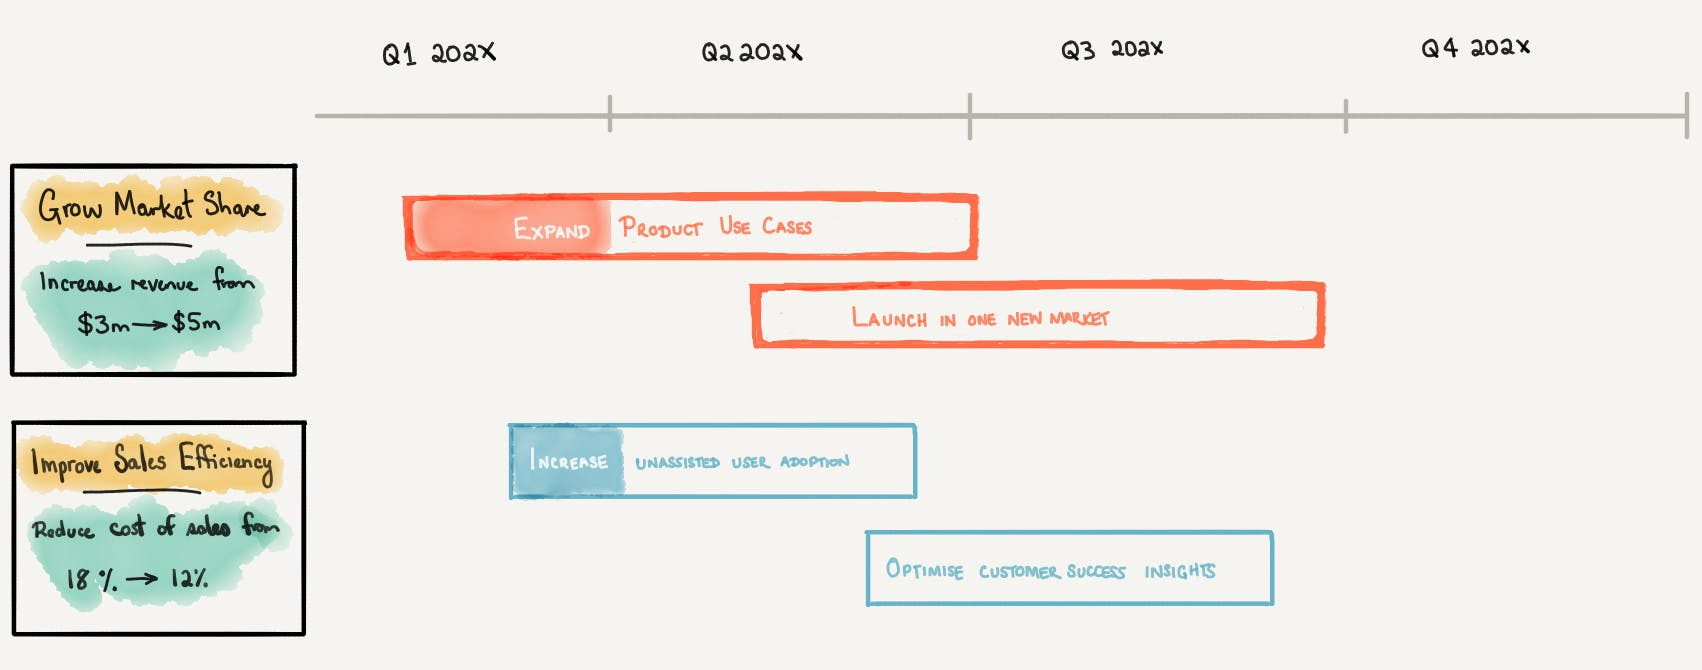 Example of a simplified outcome oriented roadmap connected to company objectives. Force yourself to prioritise each outcome before your business leaders ask you to. When known capacity is challenged due to unforeseen events, you will be always ready with the necessary priority trade-offs.